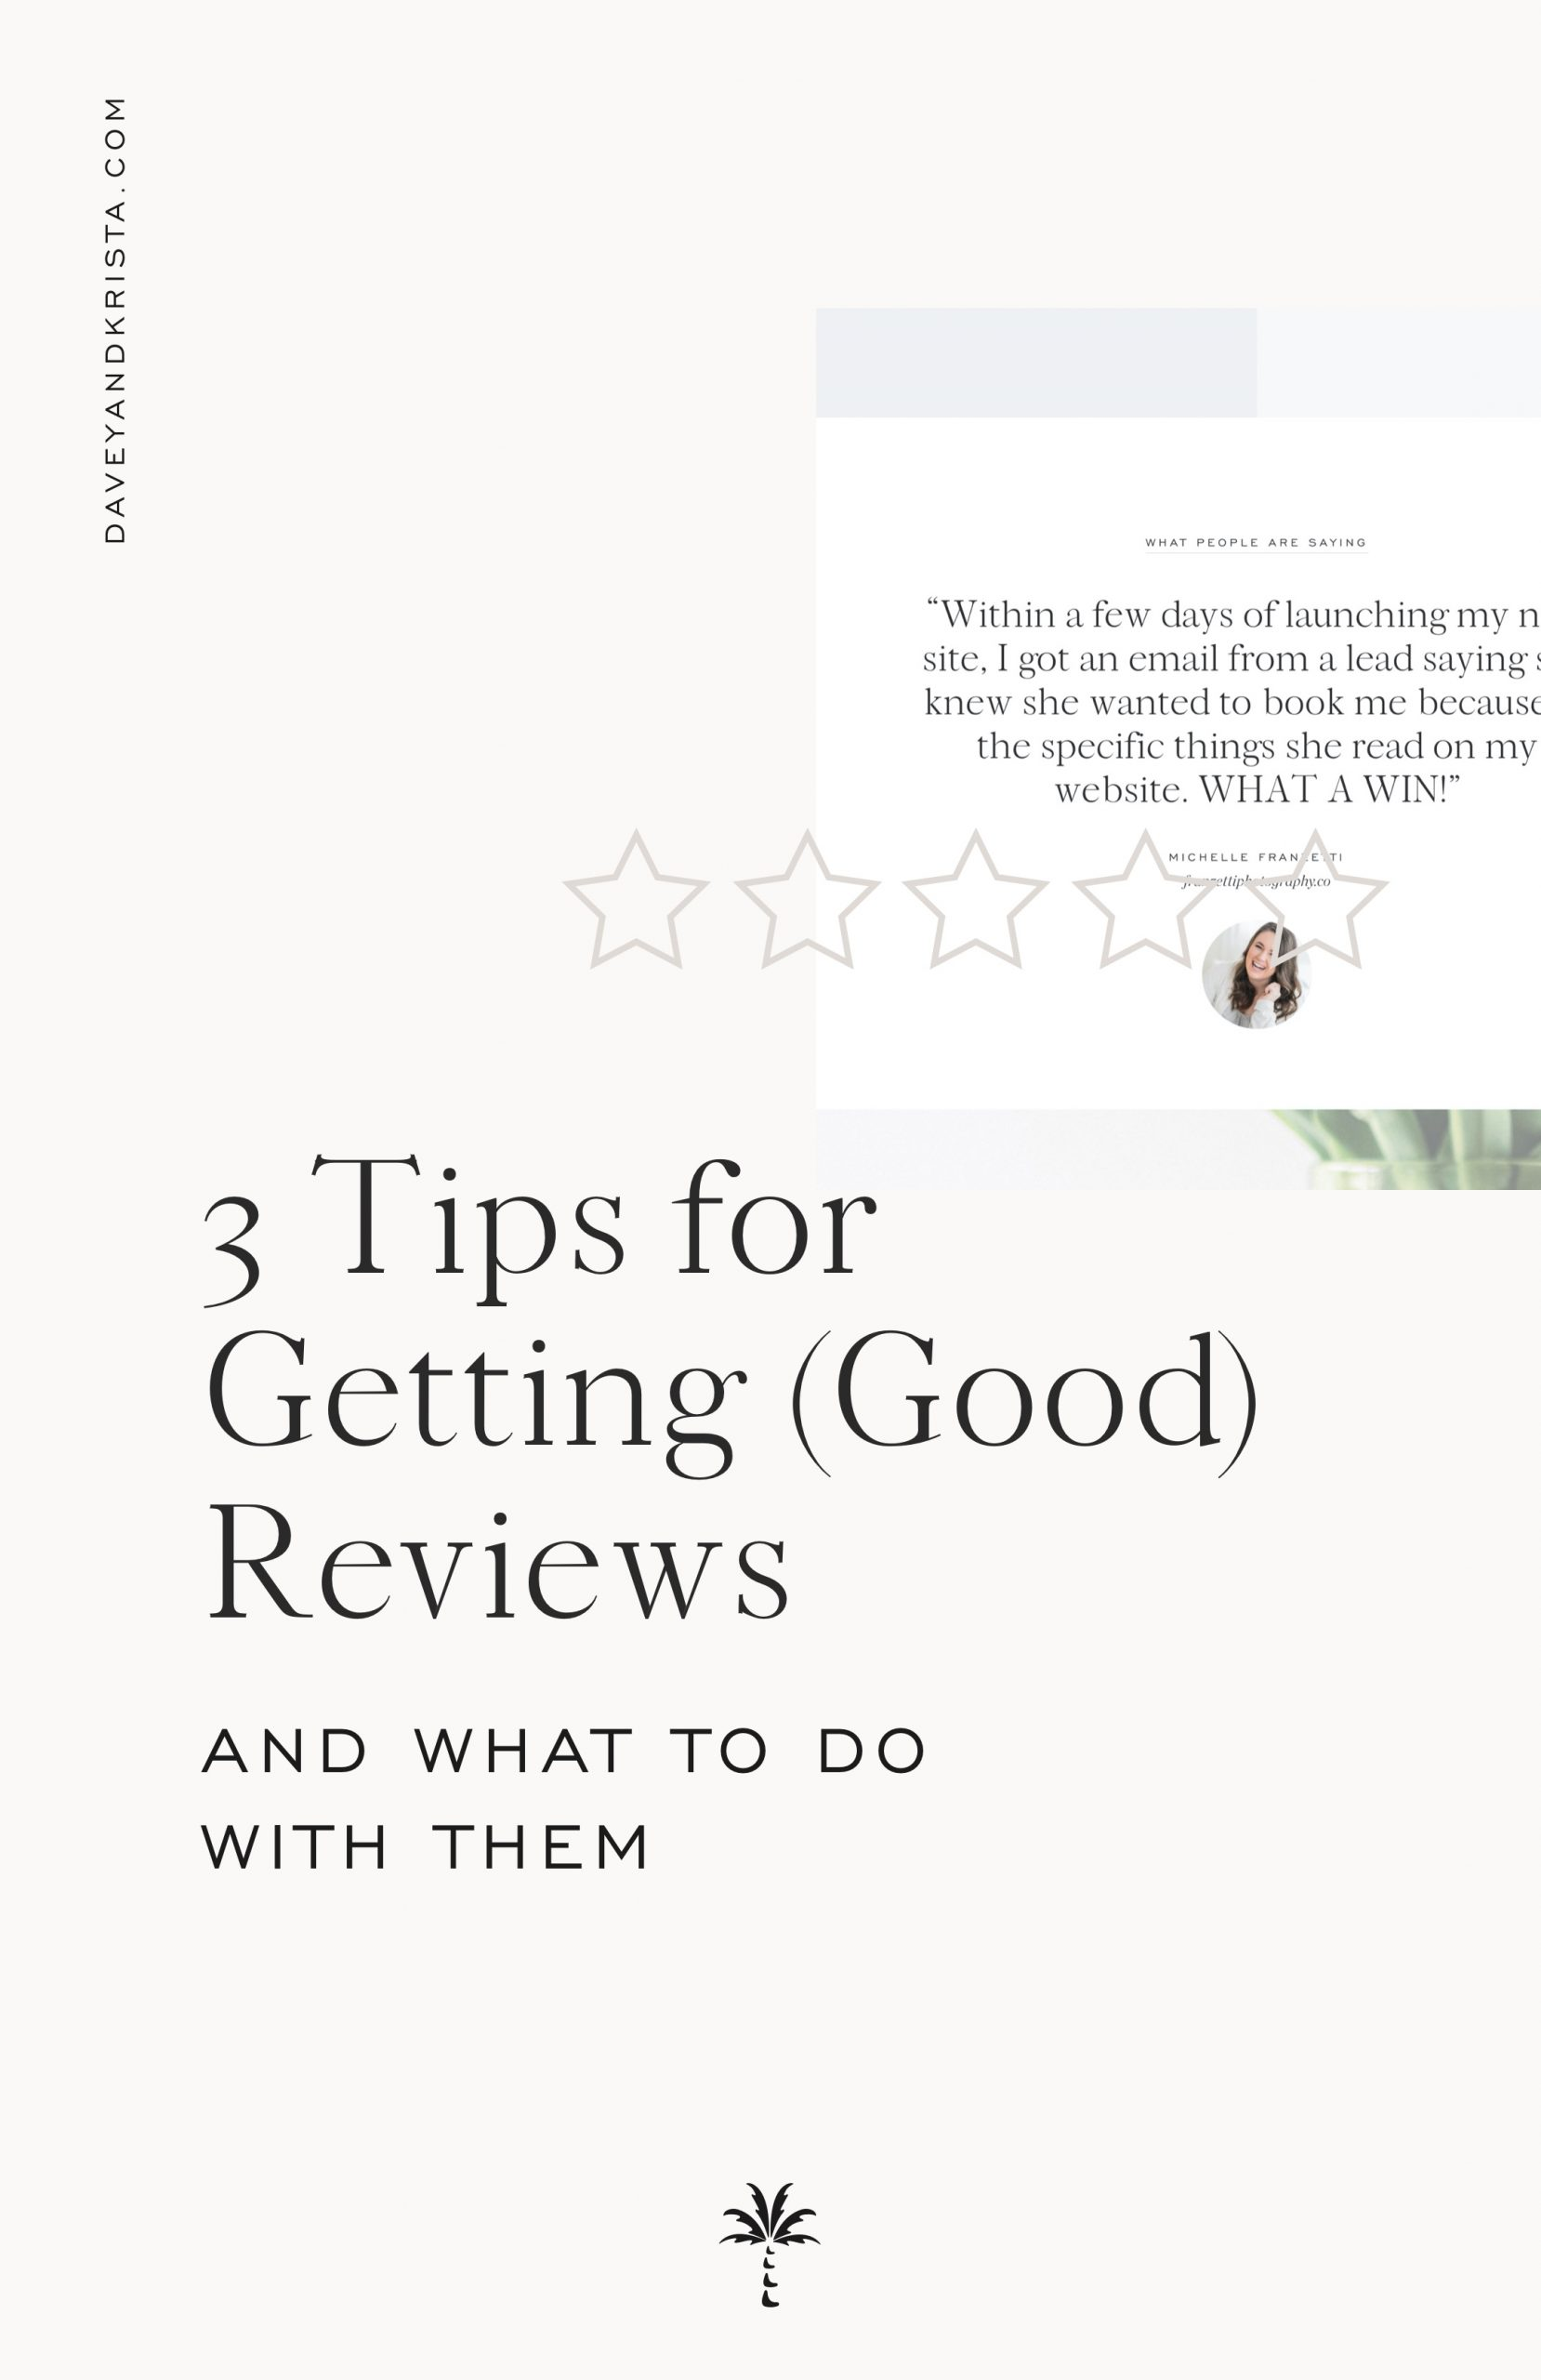 How to Get Good Reviews (and what to do with them) | Davey & Krista